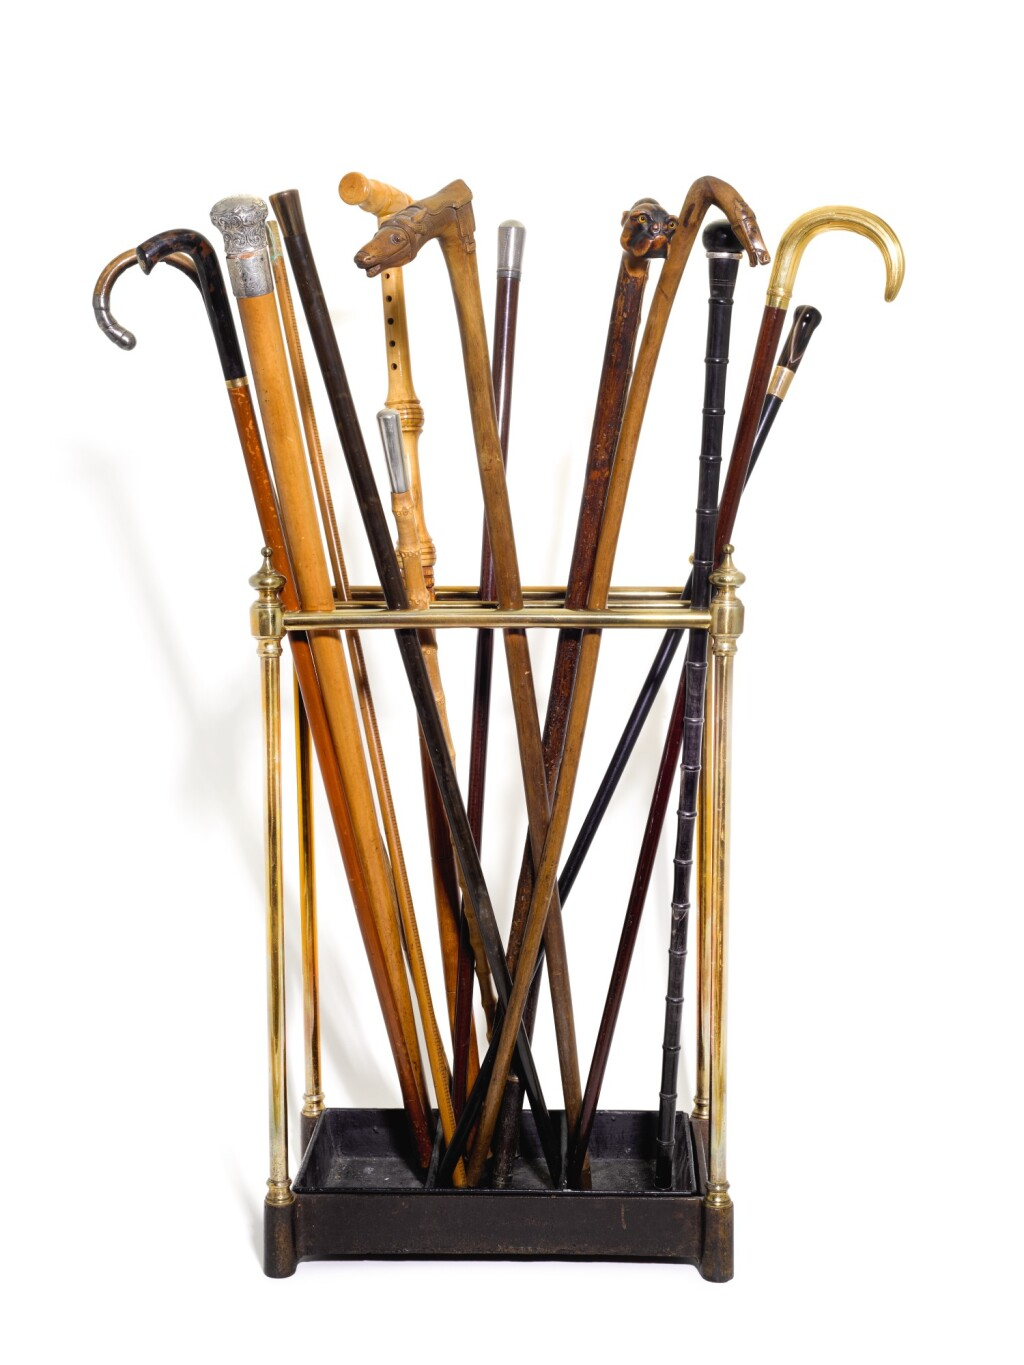 A COLLECTION OF THIRTEEN WALKING CANES, VARIOUS, LATE 19TH/EARLY 20TH CENTURY,